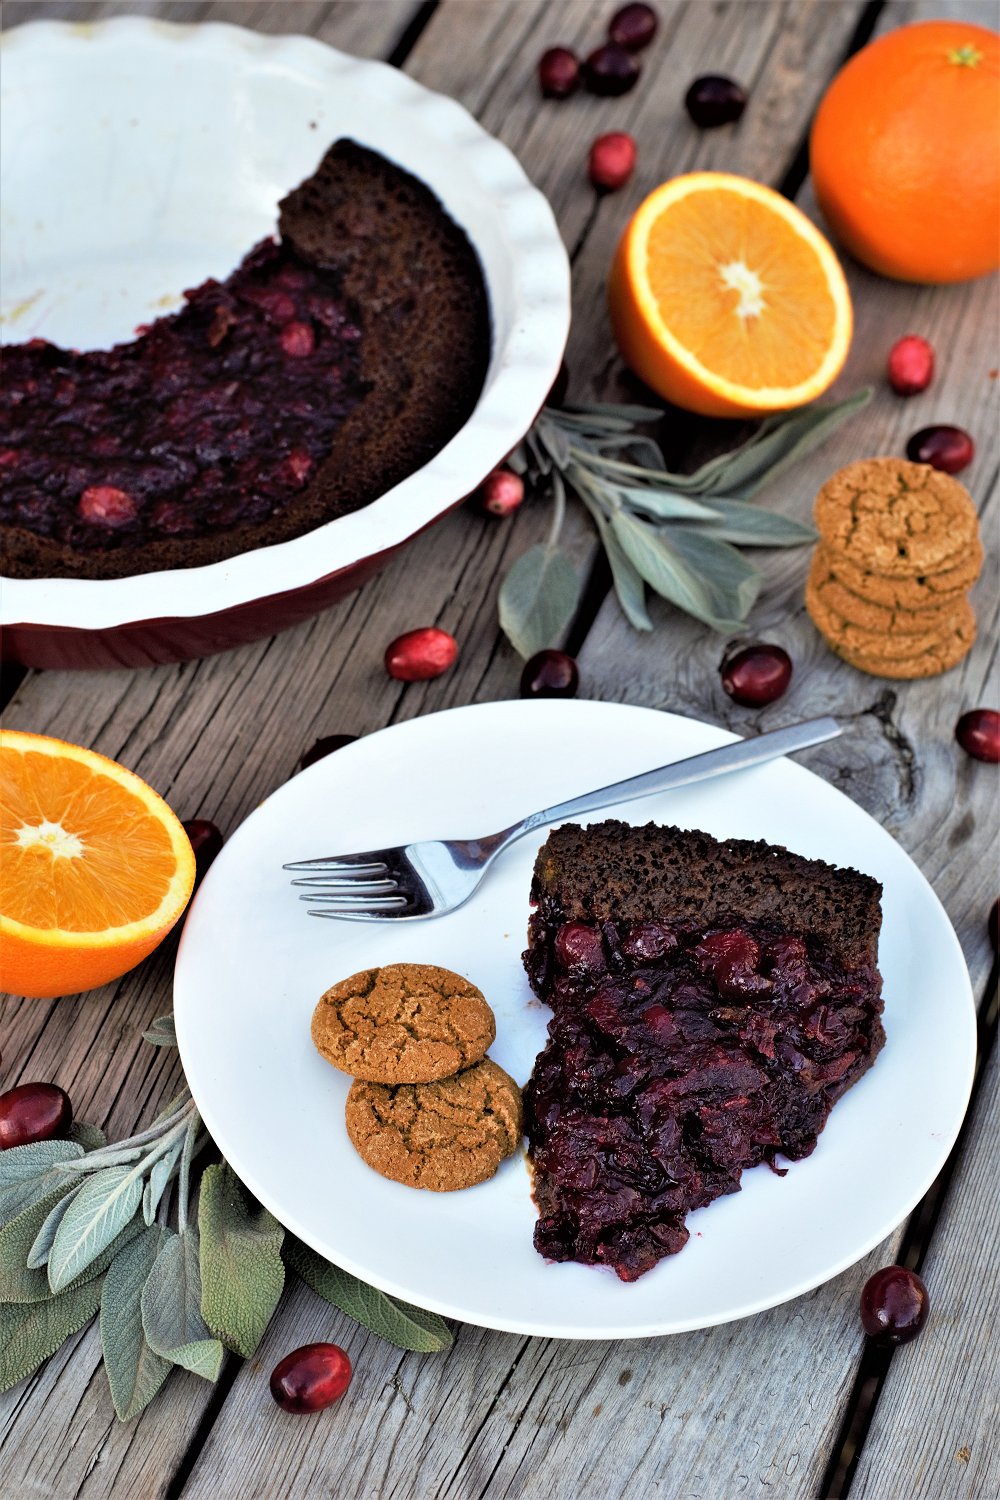 Fresh cranberry & orange zest filling is the best complement for gingersnap cookie crust, perfect for your holiday table or taking over to the neighbors!